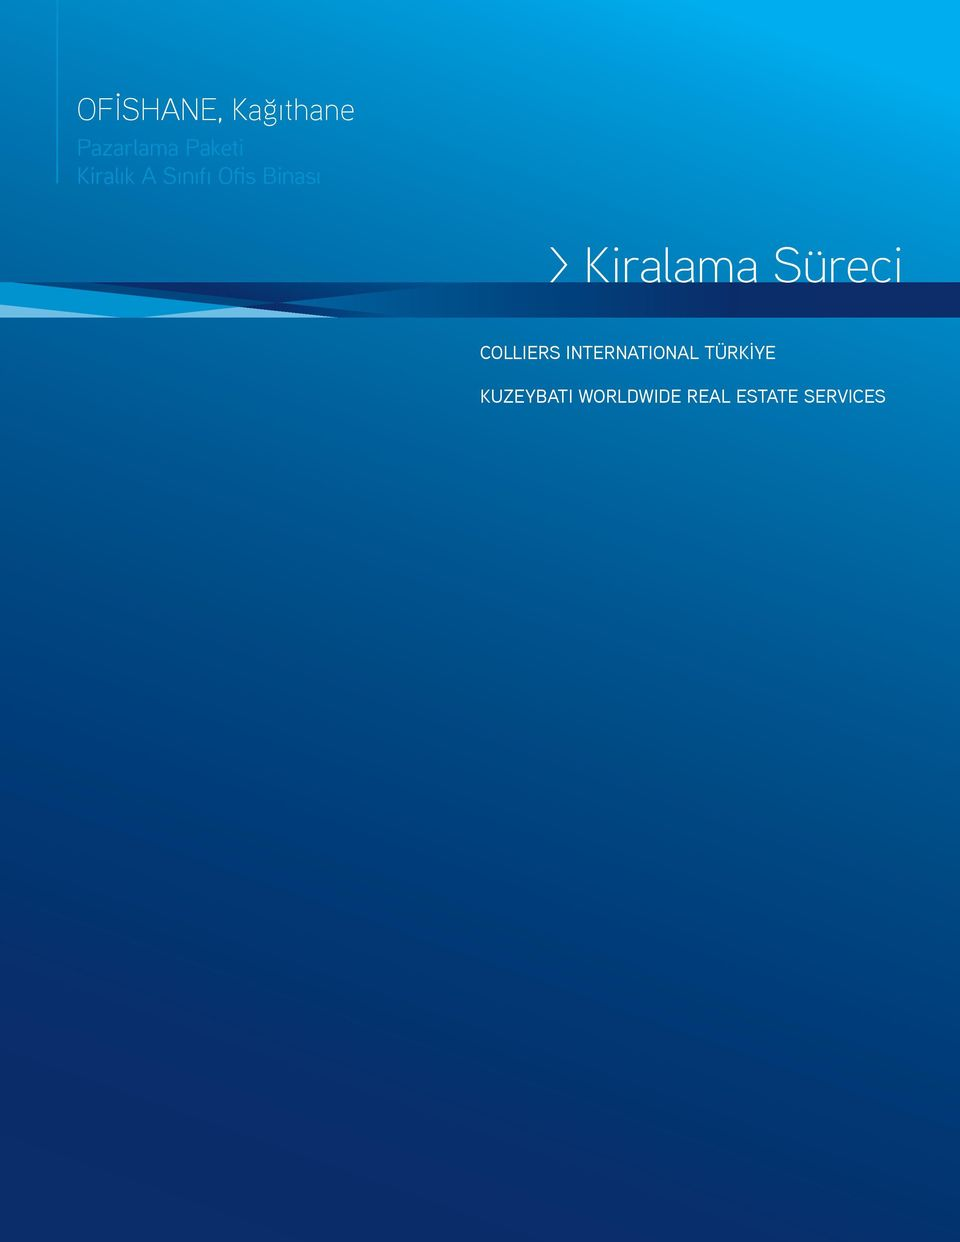 Kiralama Süreci COLLIERS INTERNATIONAL